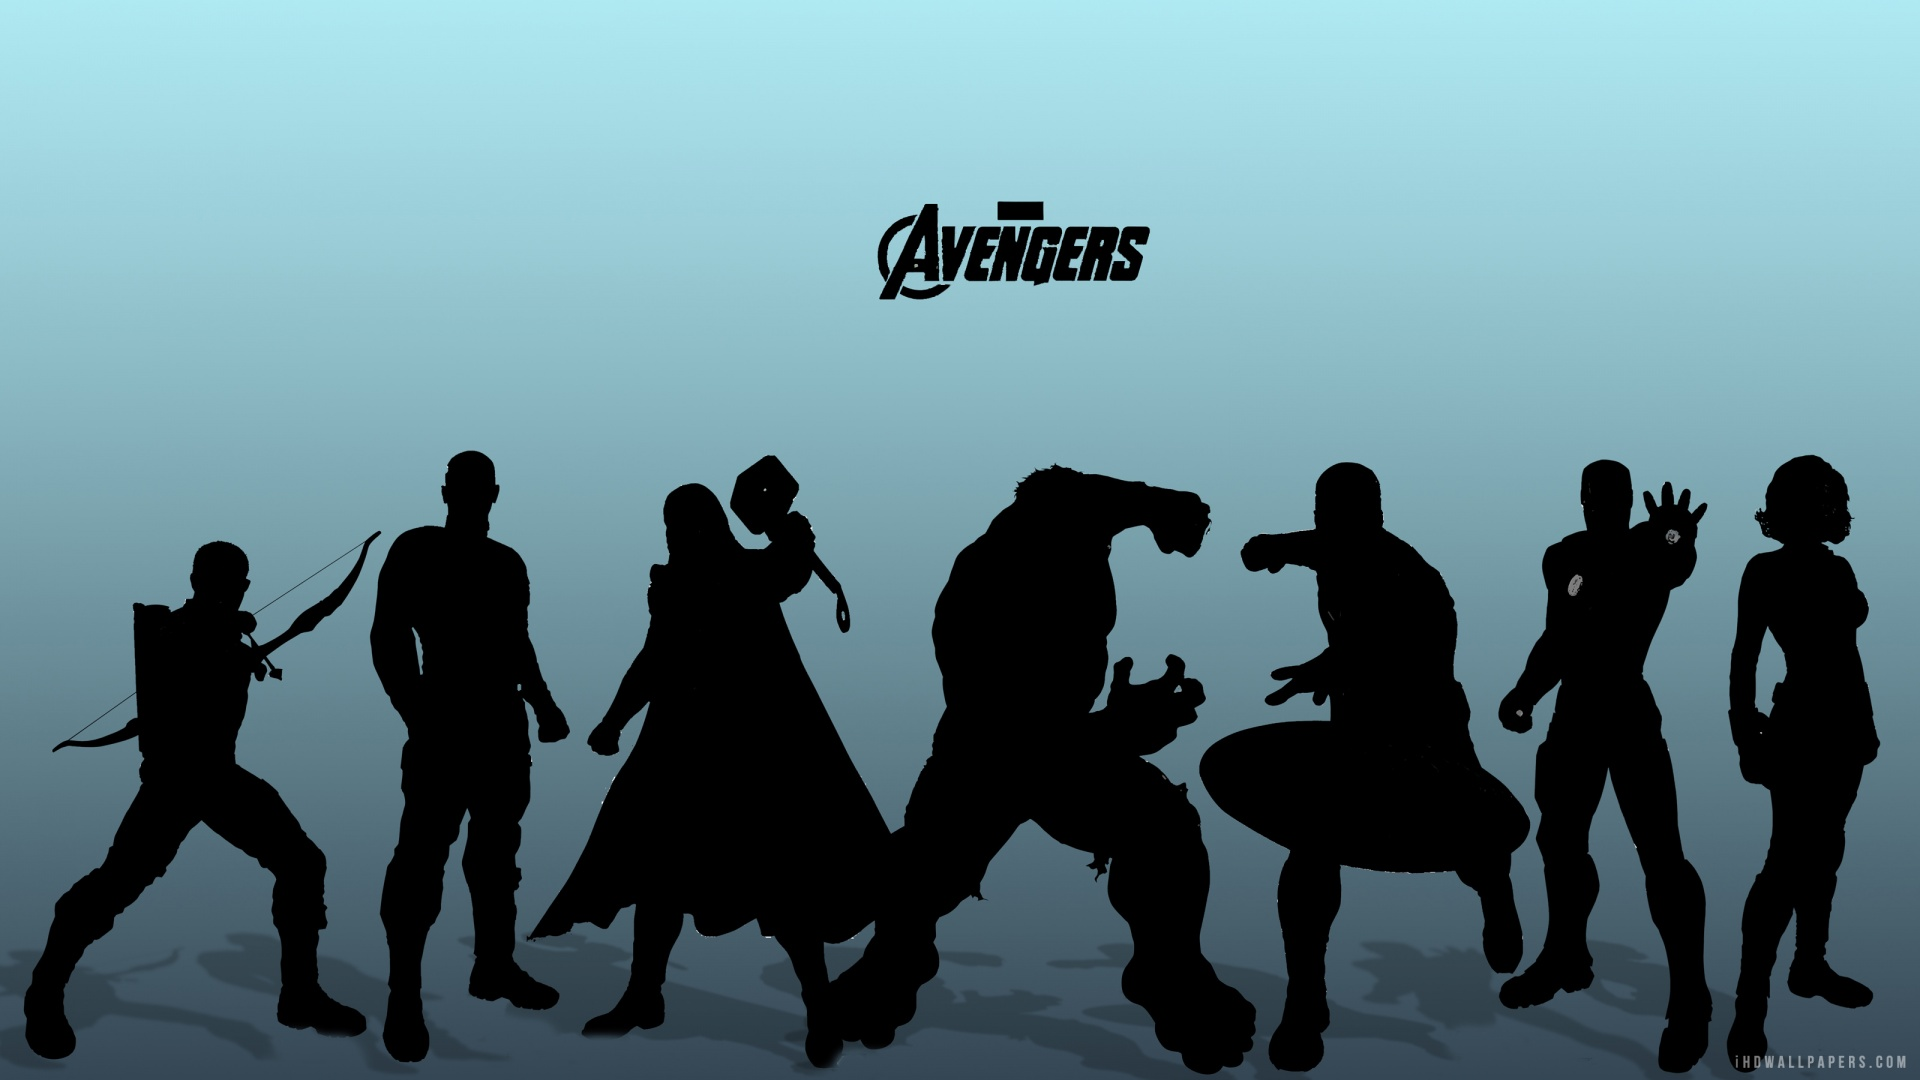 Download Avengers Superheroes WallpaperBackground in 1920x1080 HD 1920x1080